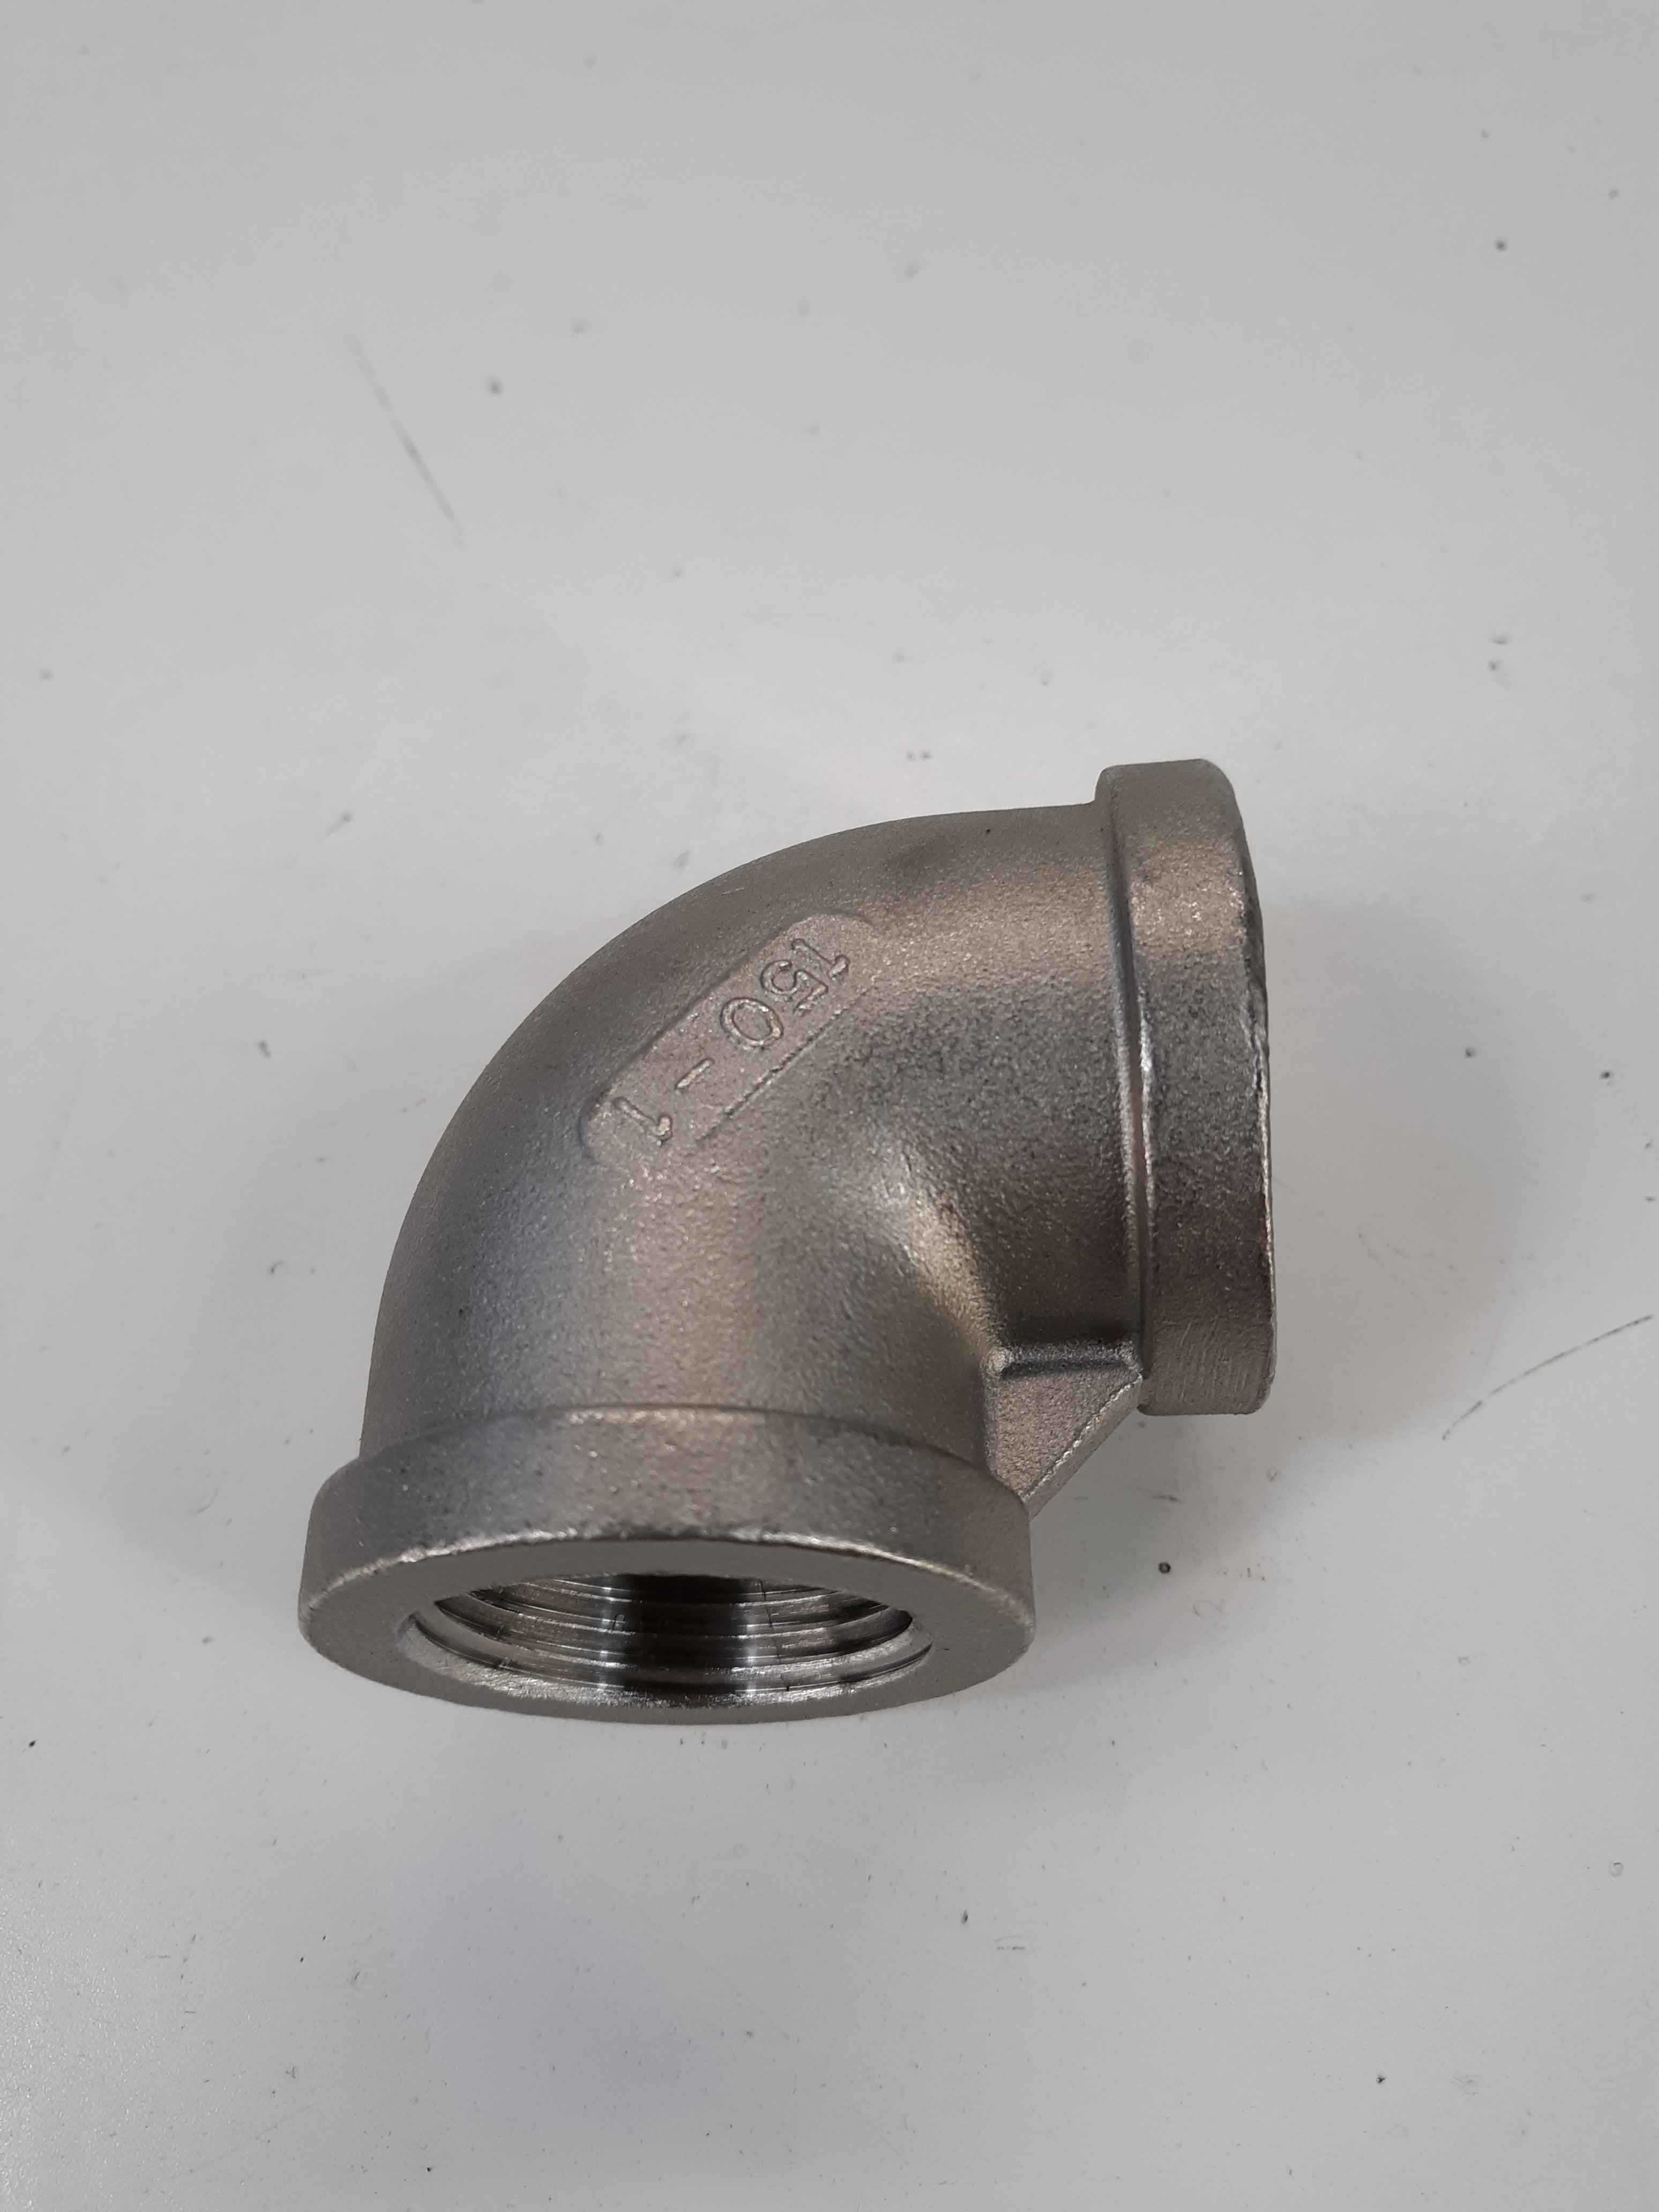 SP114 MB-304 150-1 Stainless Steel 90 Degree Elbow 1 lot of 4